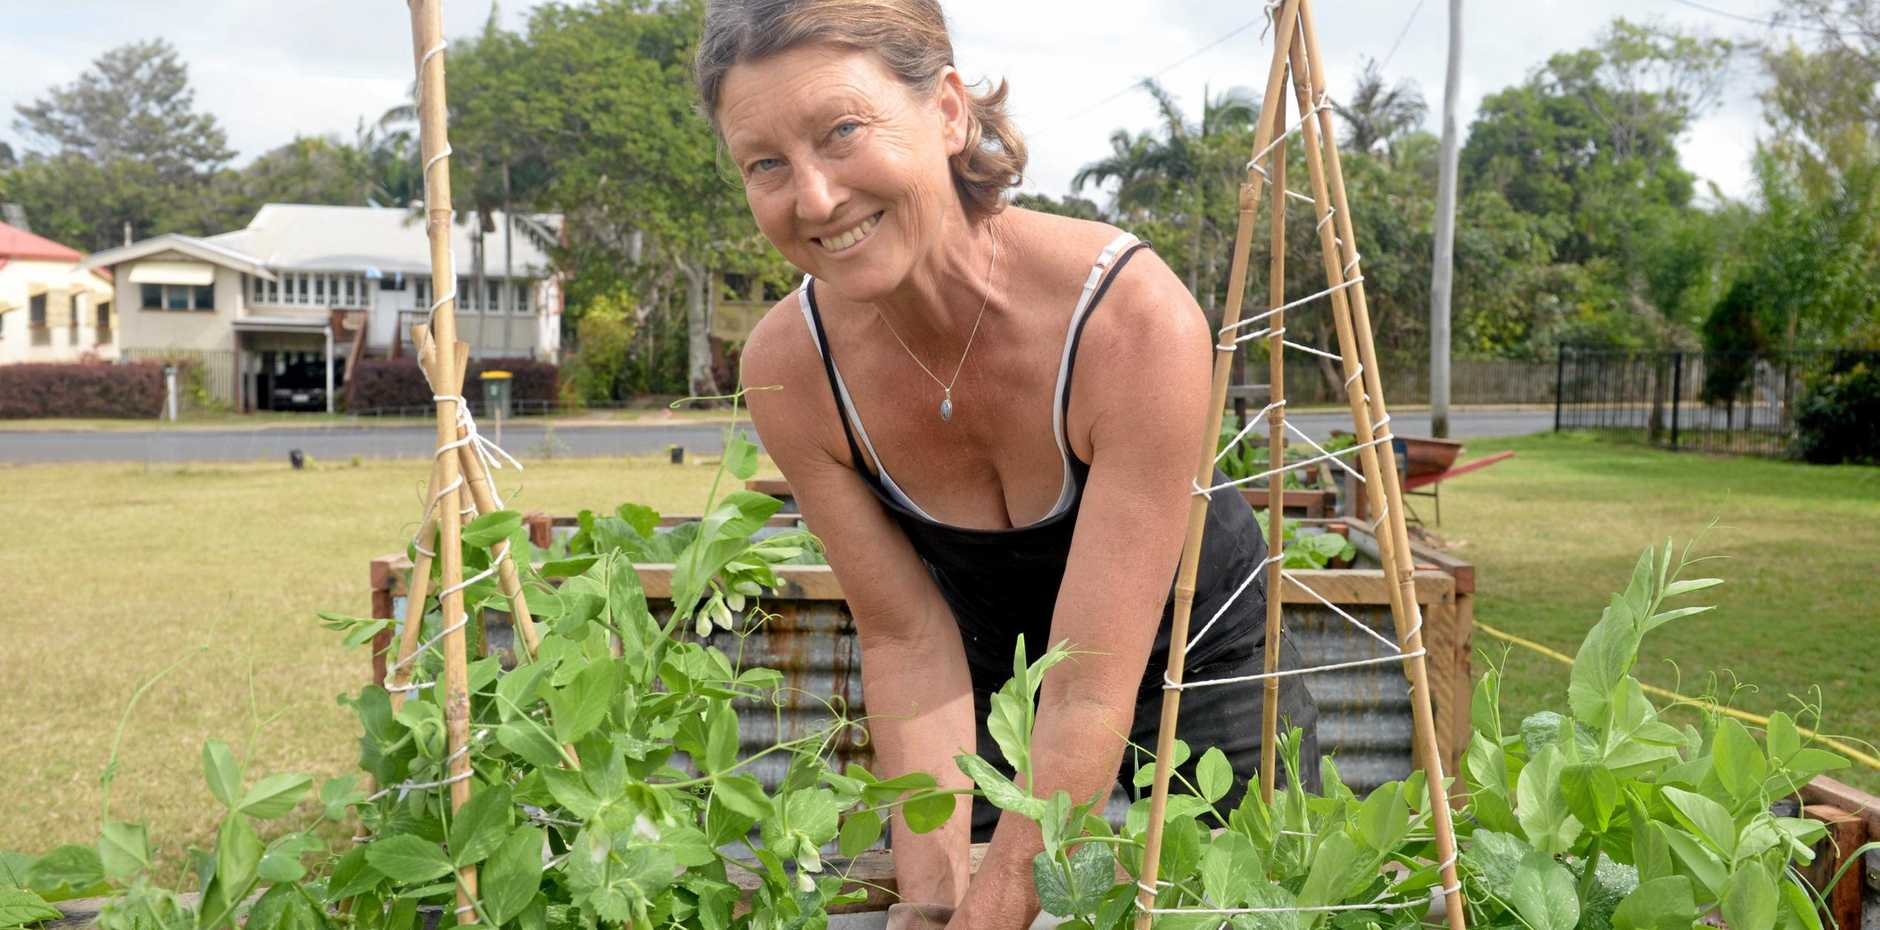 Kirsten Muir is grateful to local businesses who donate seeds, plants and other gardening products to the community garden on Ross St